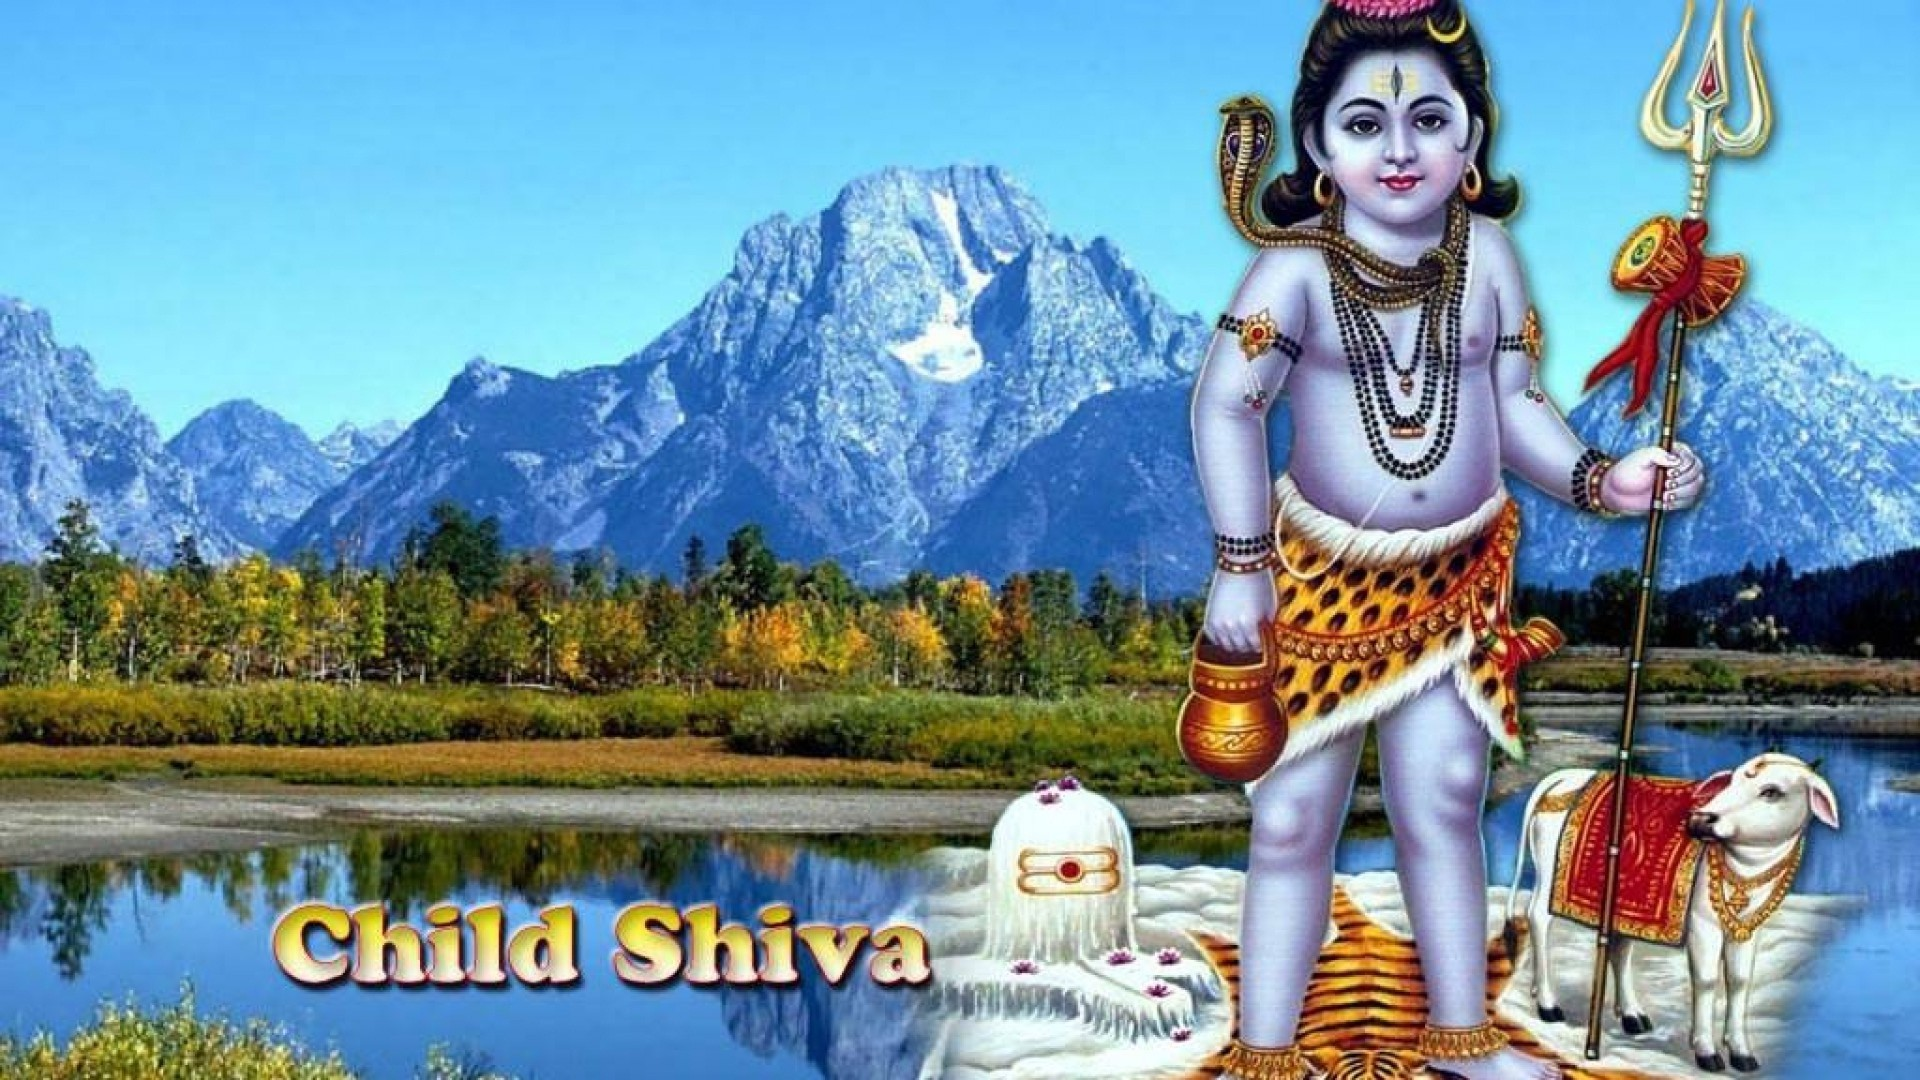 Lord Shiva Childhood Wallpapers